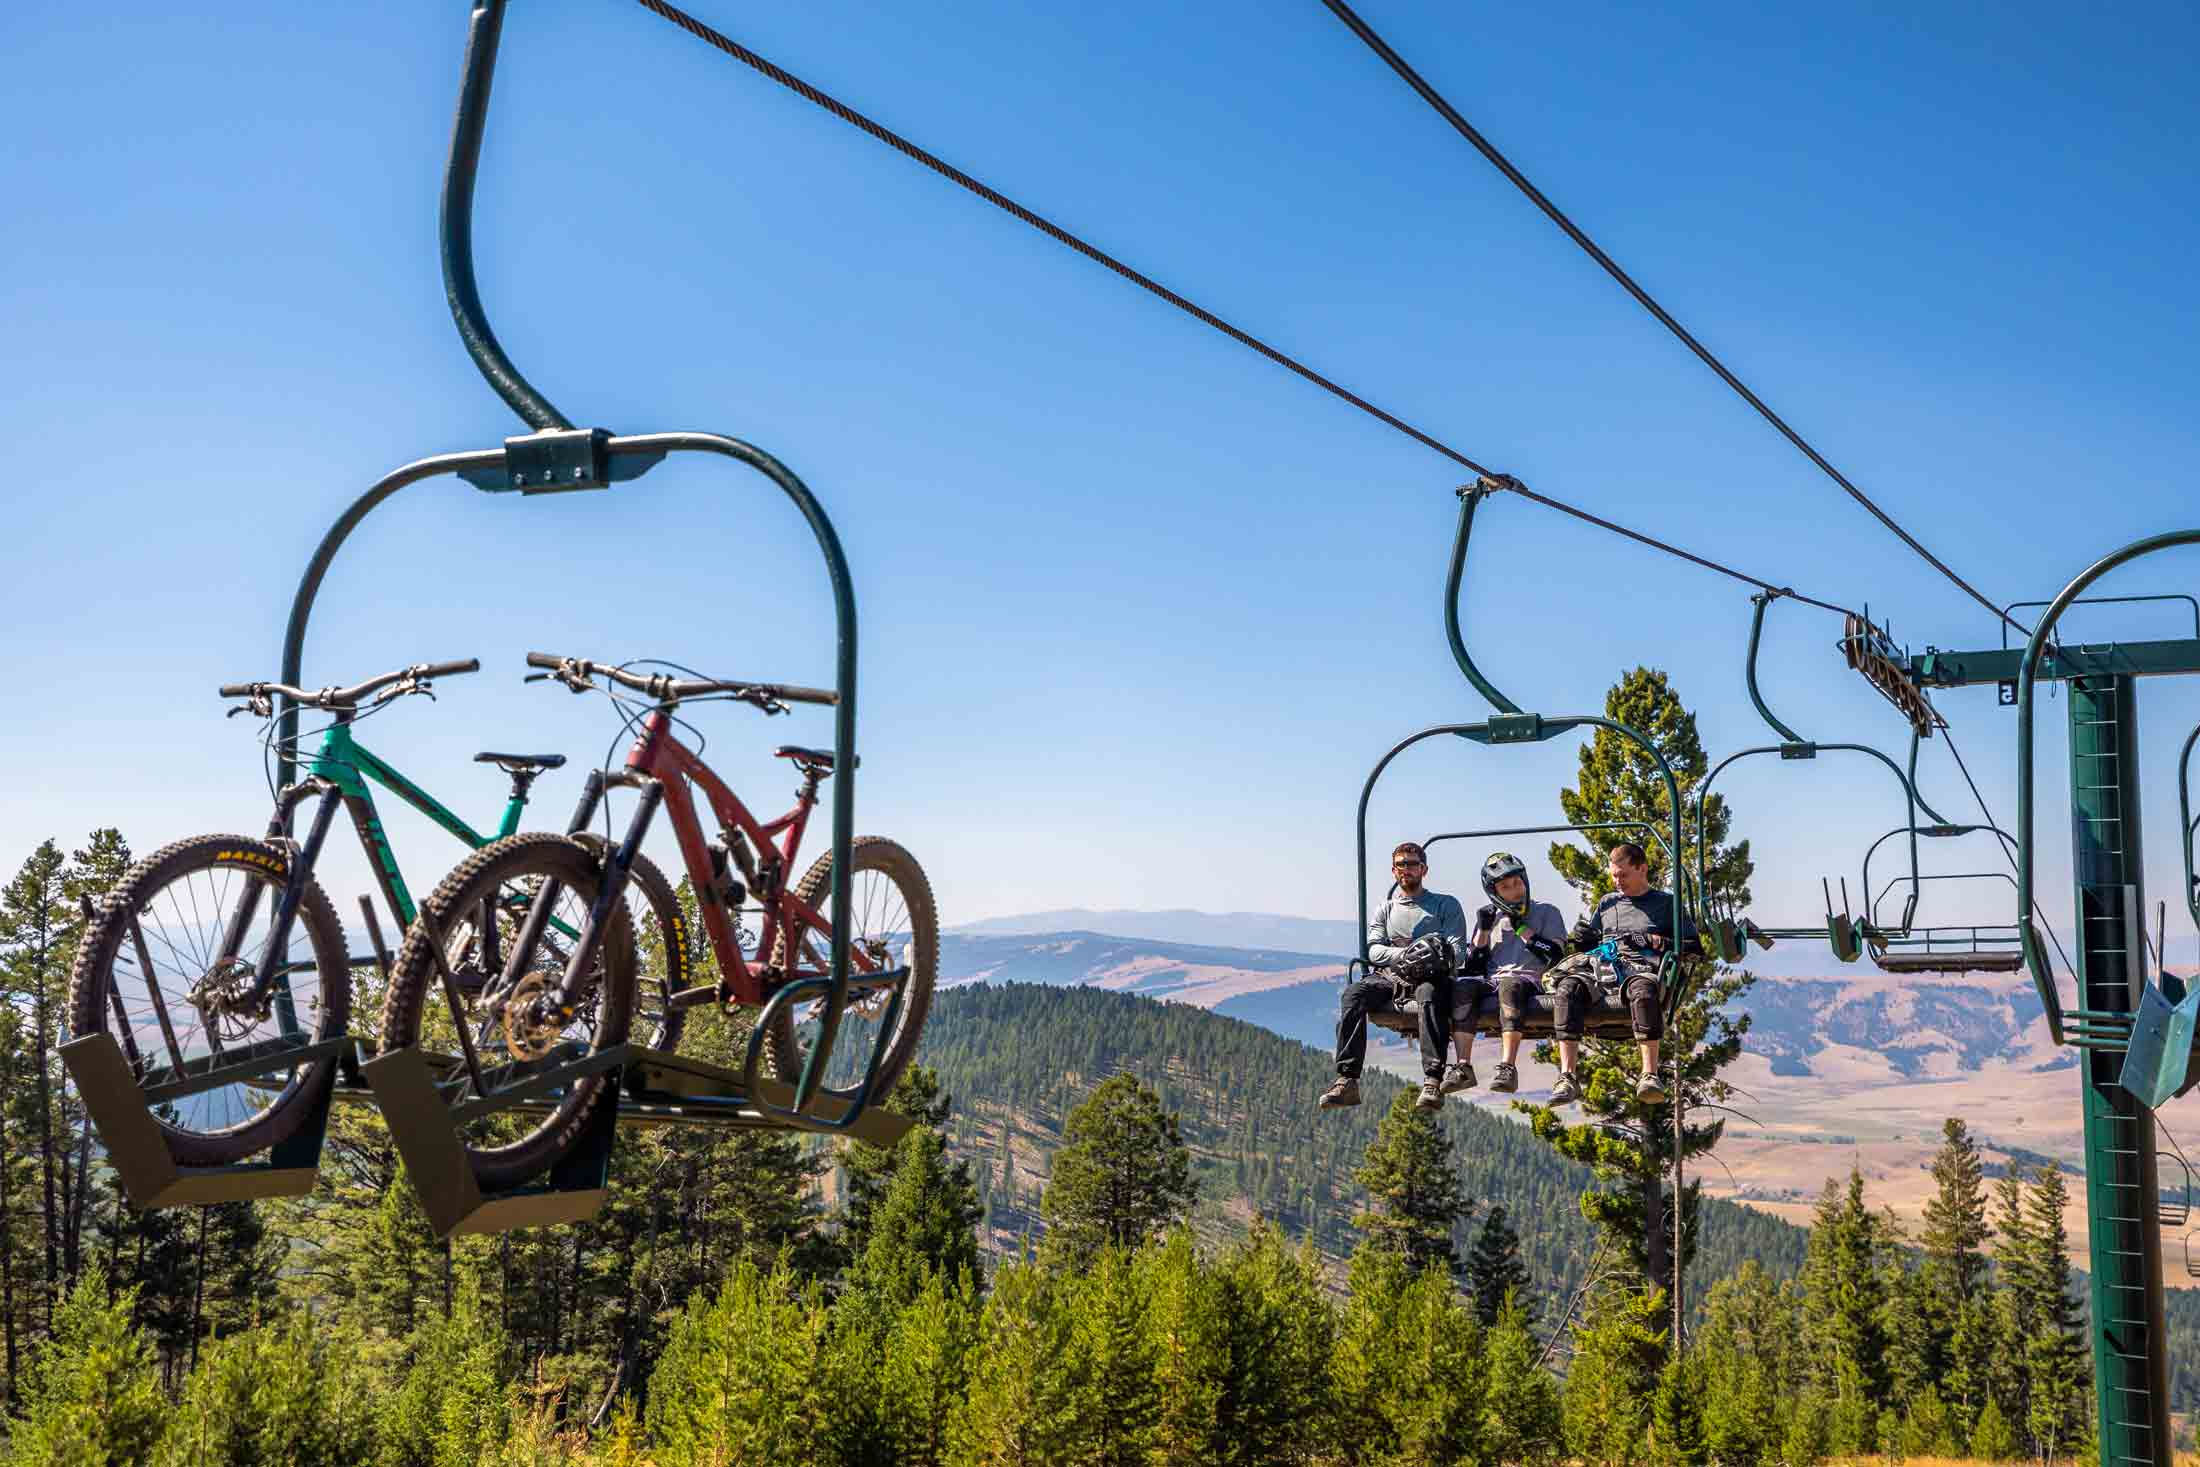 Cyclists on a lift with their mountain bikes at Discovery Bike Park in Philipsburg, Montana.